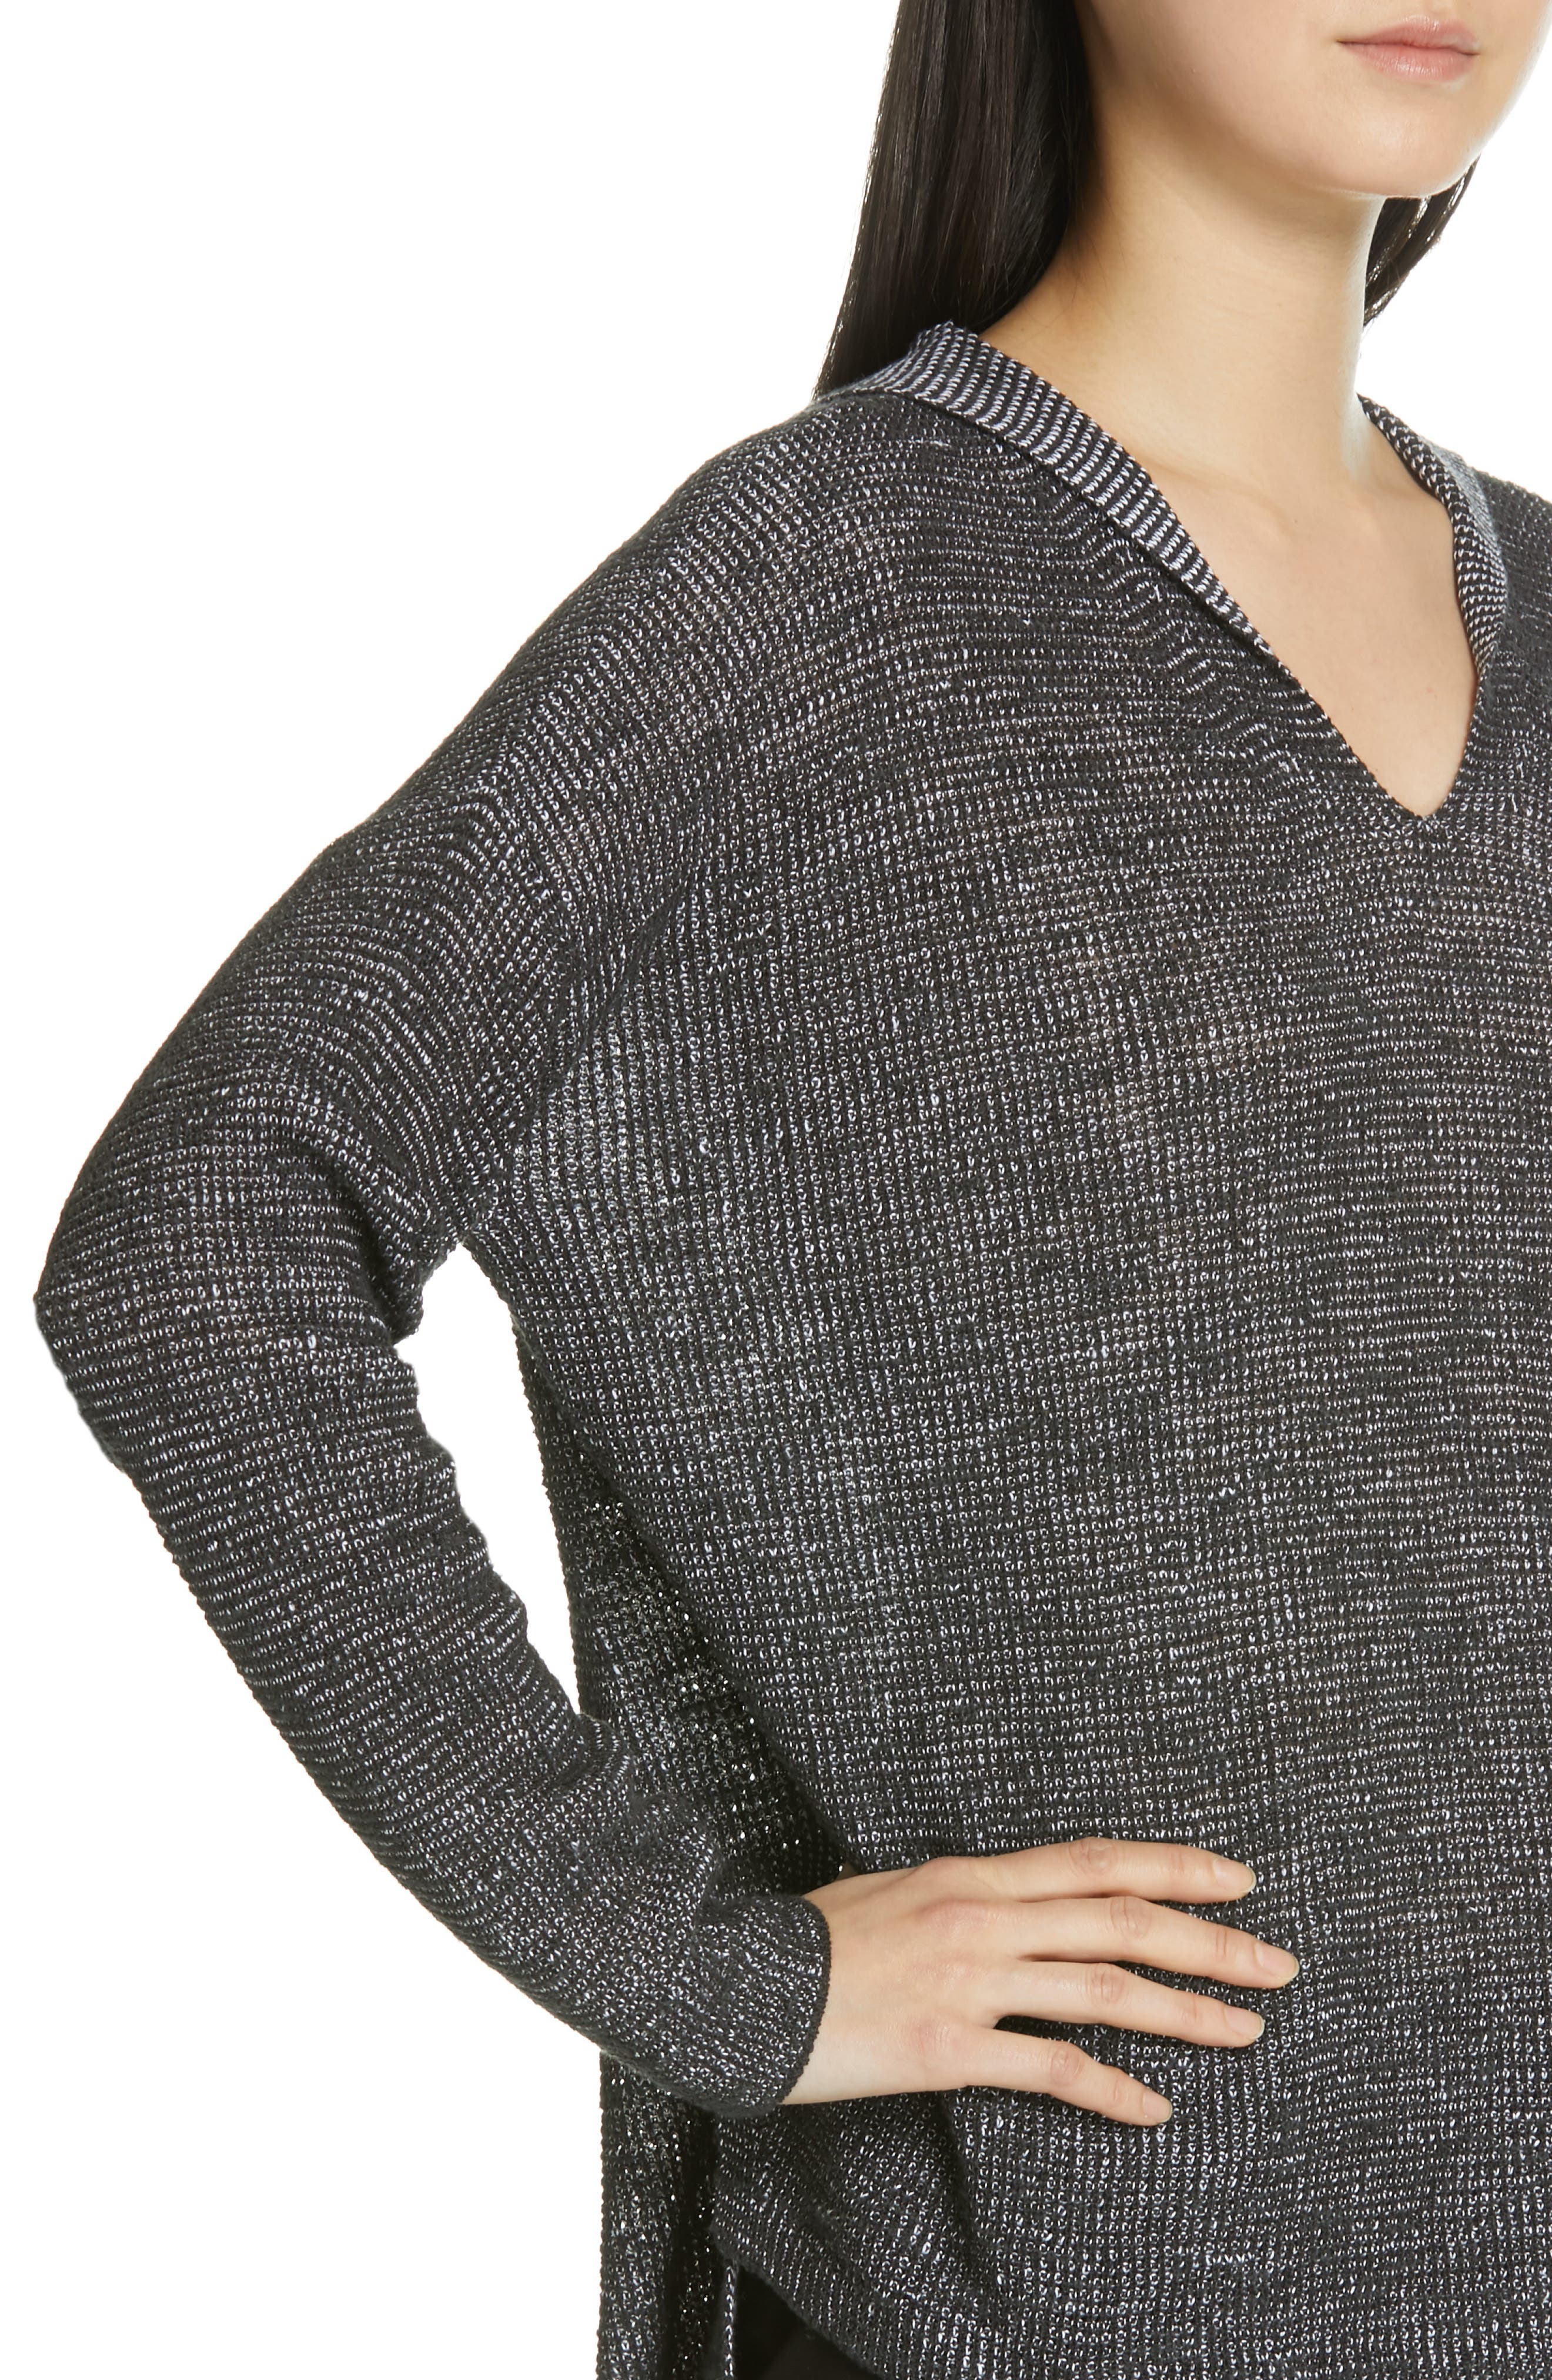 EILEEN FISHER, Organic Linen & Cotton Boxy Hooded Top, Alternate thumbnail 4, color, CHARCOAL